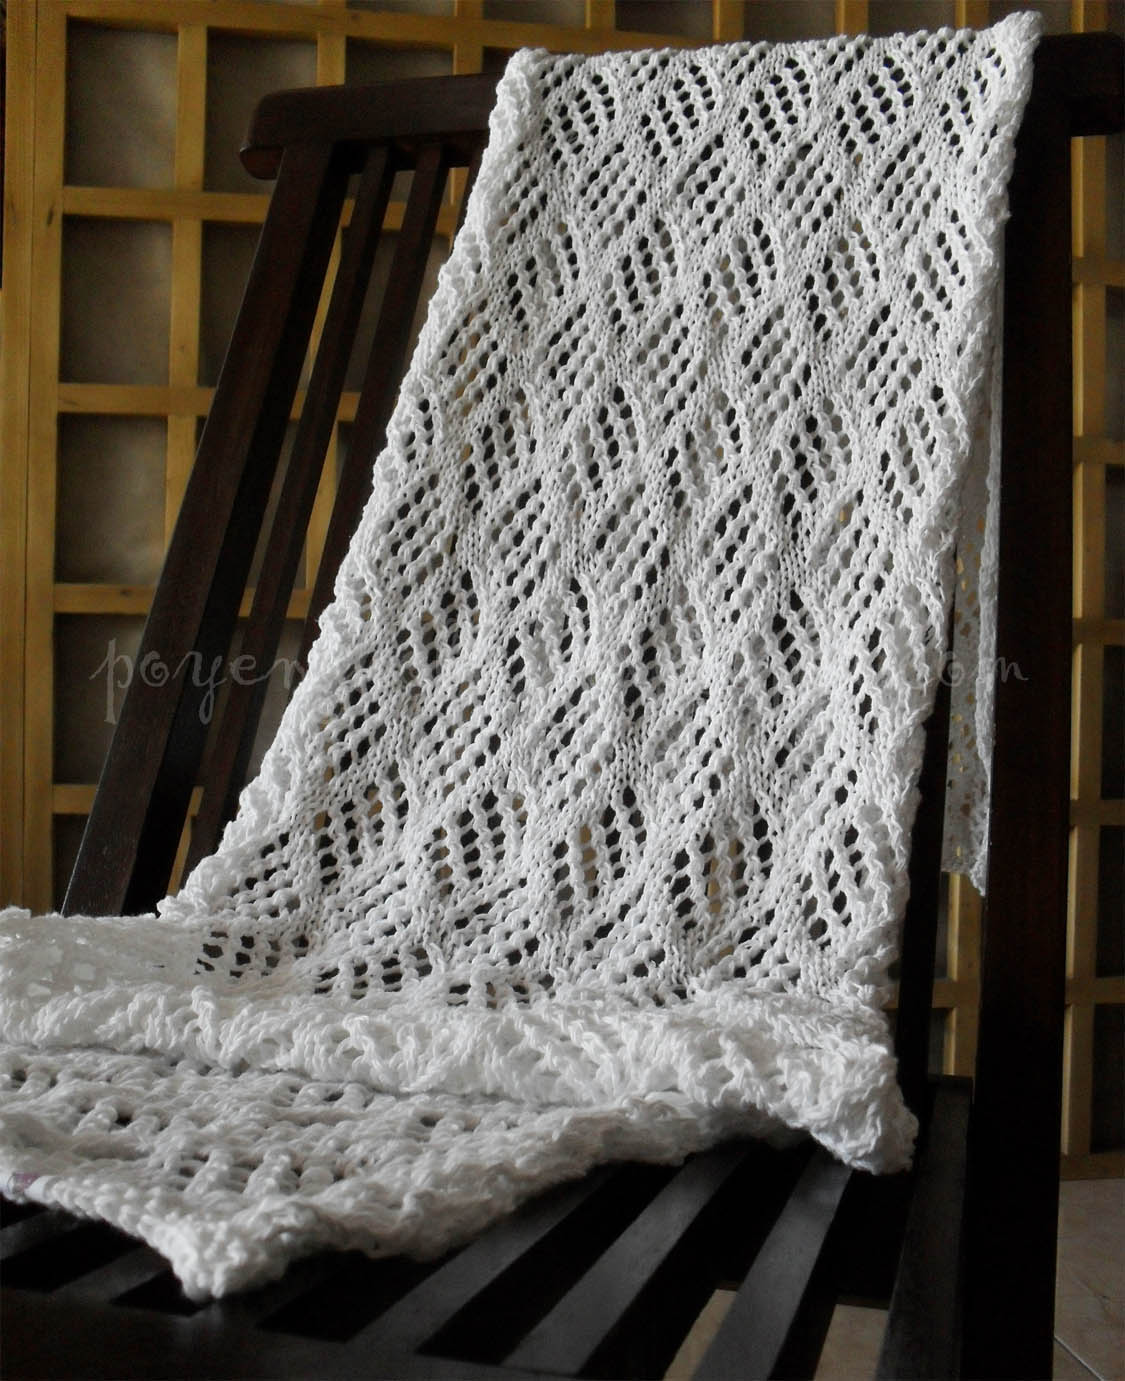 Ajeng Belajar Merajut: Rajut Free Knitting Pattern : Interlude Lace Wrap